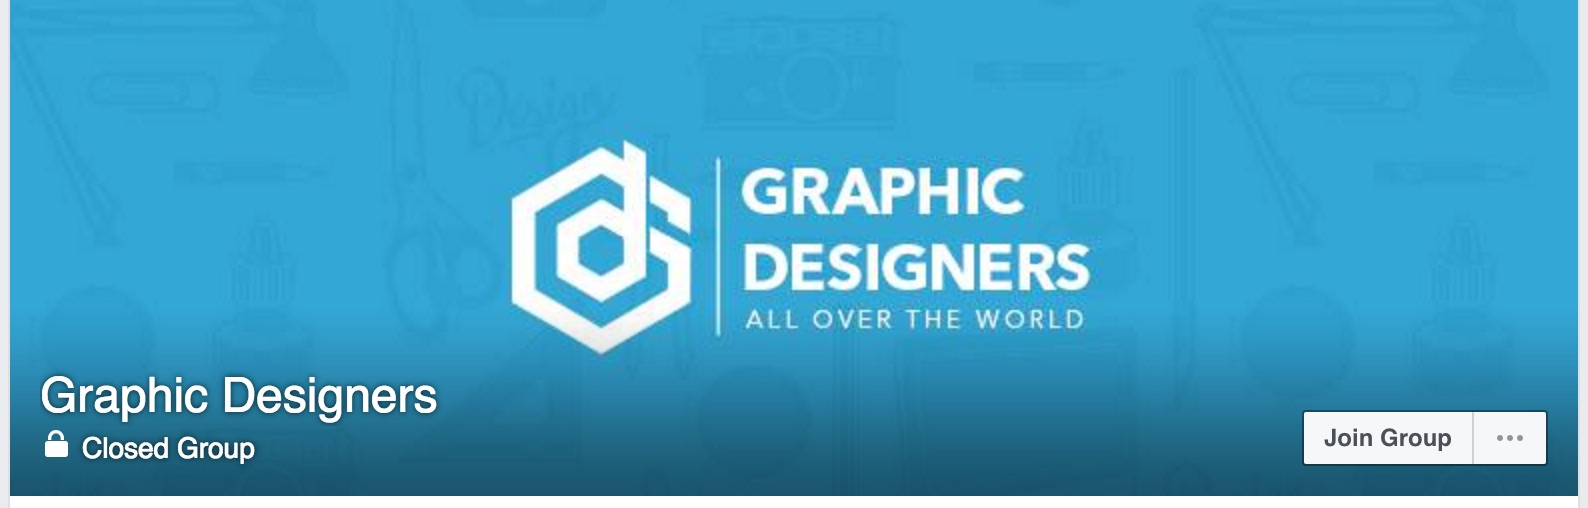 Facebook-Groups-for-Designers-Graphic_Designers